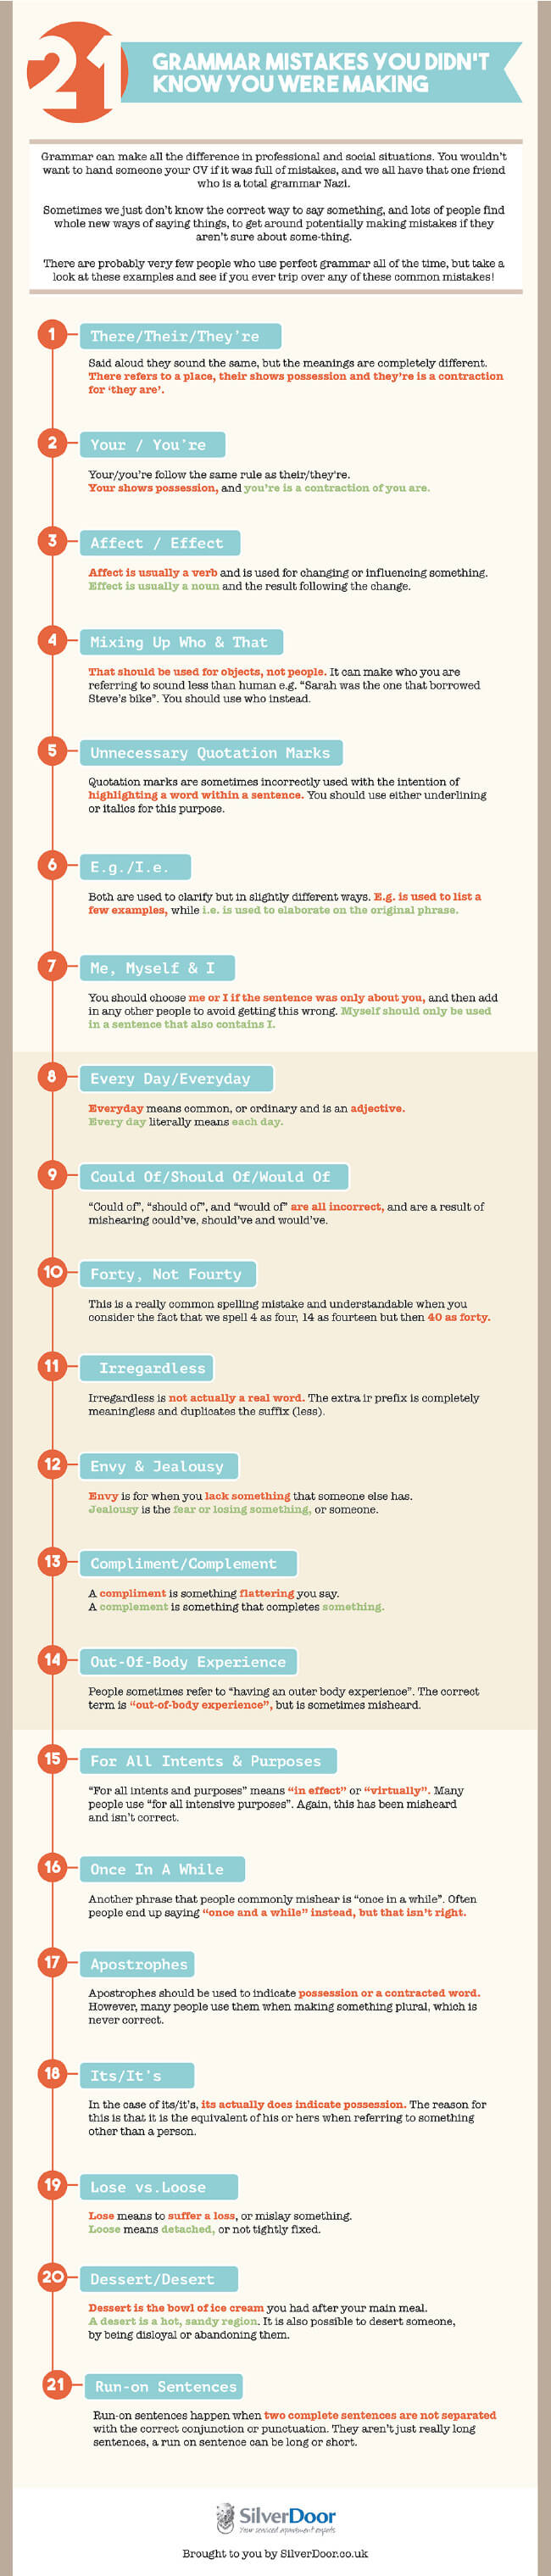 Image titled how to avoid the 21 most common grammar mistakes